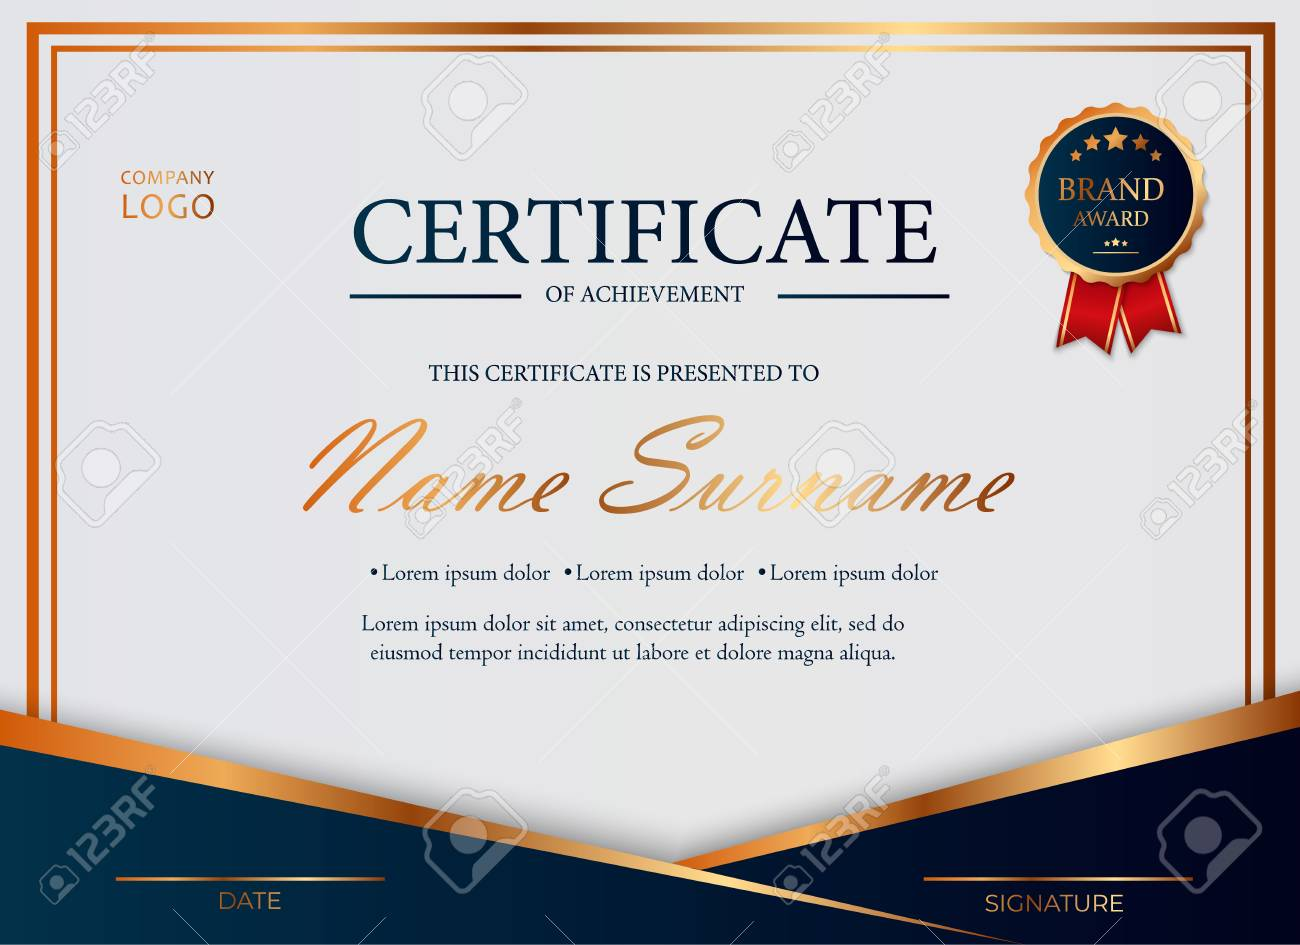 Certificate Of Appreciation Award Diploma Design Template Certificate Royalty Free Cliparts Vectors And Stock Illustration Image 122688328